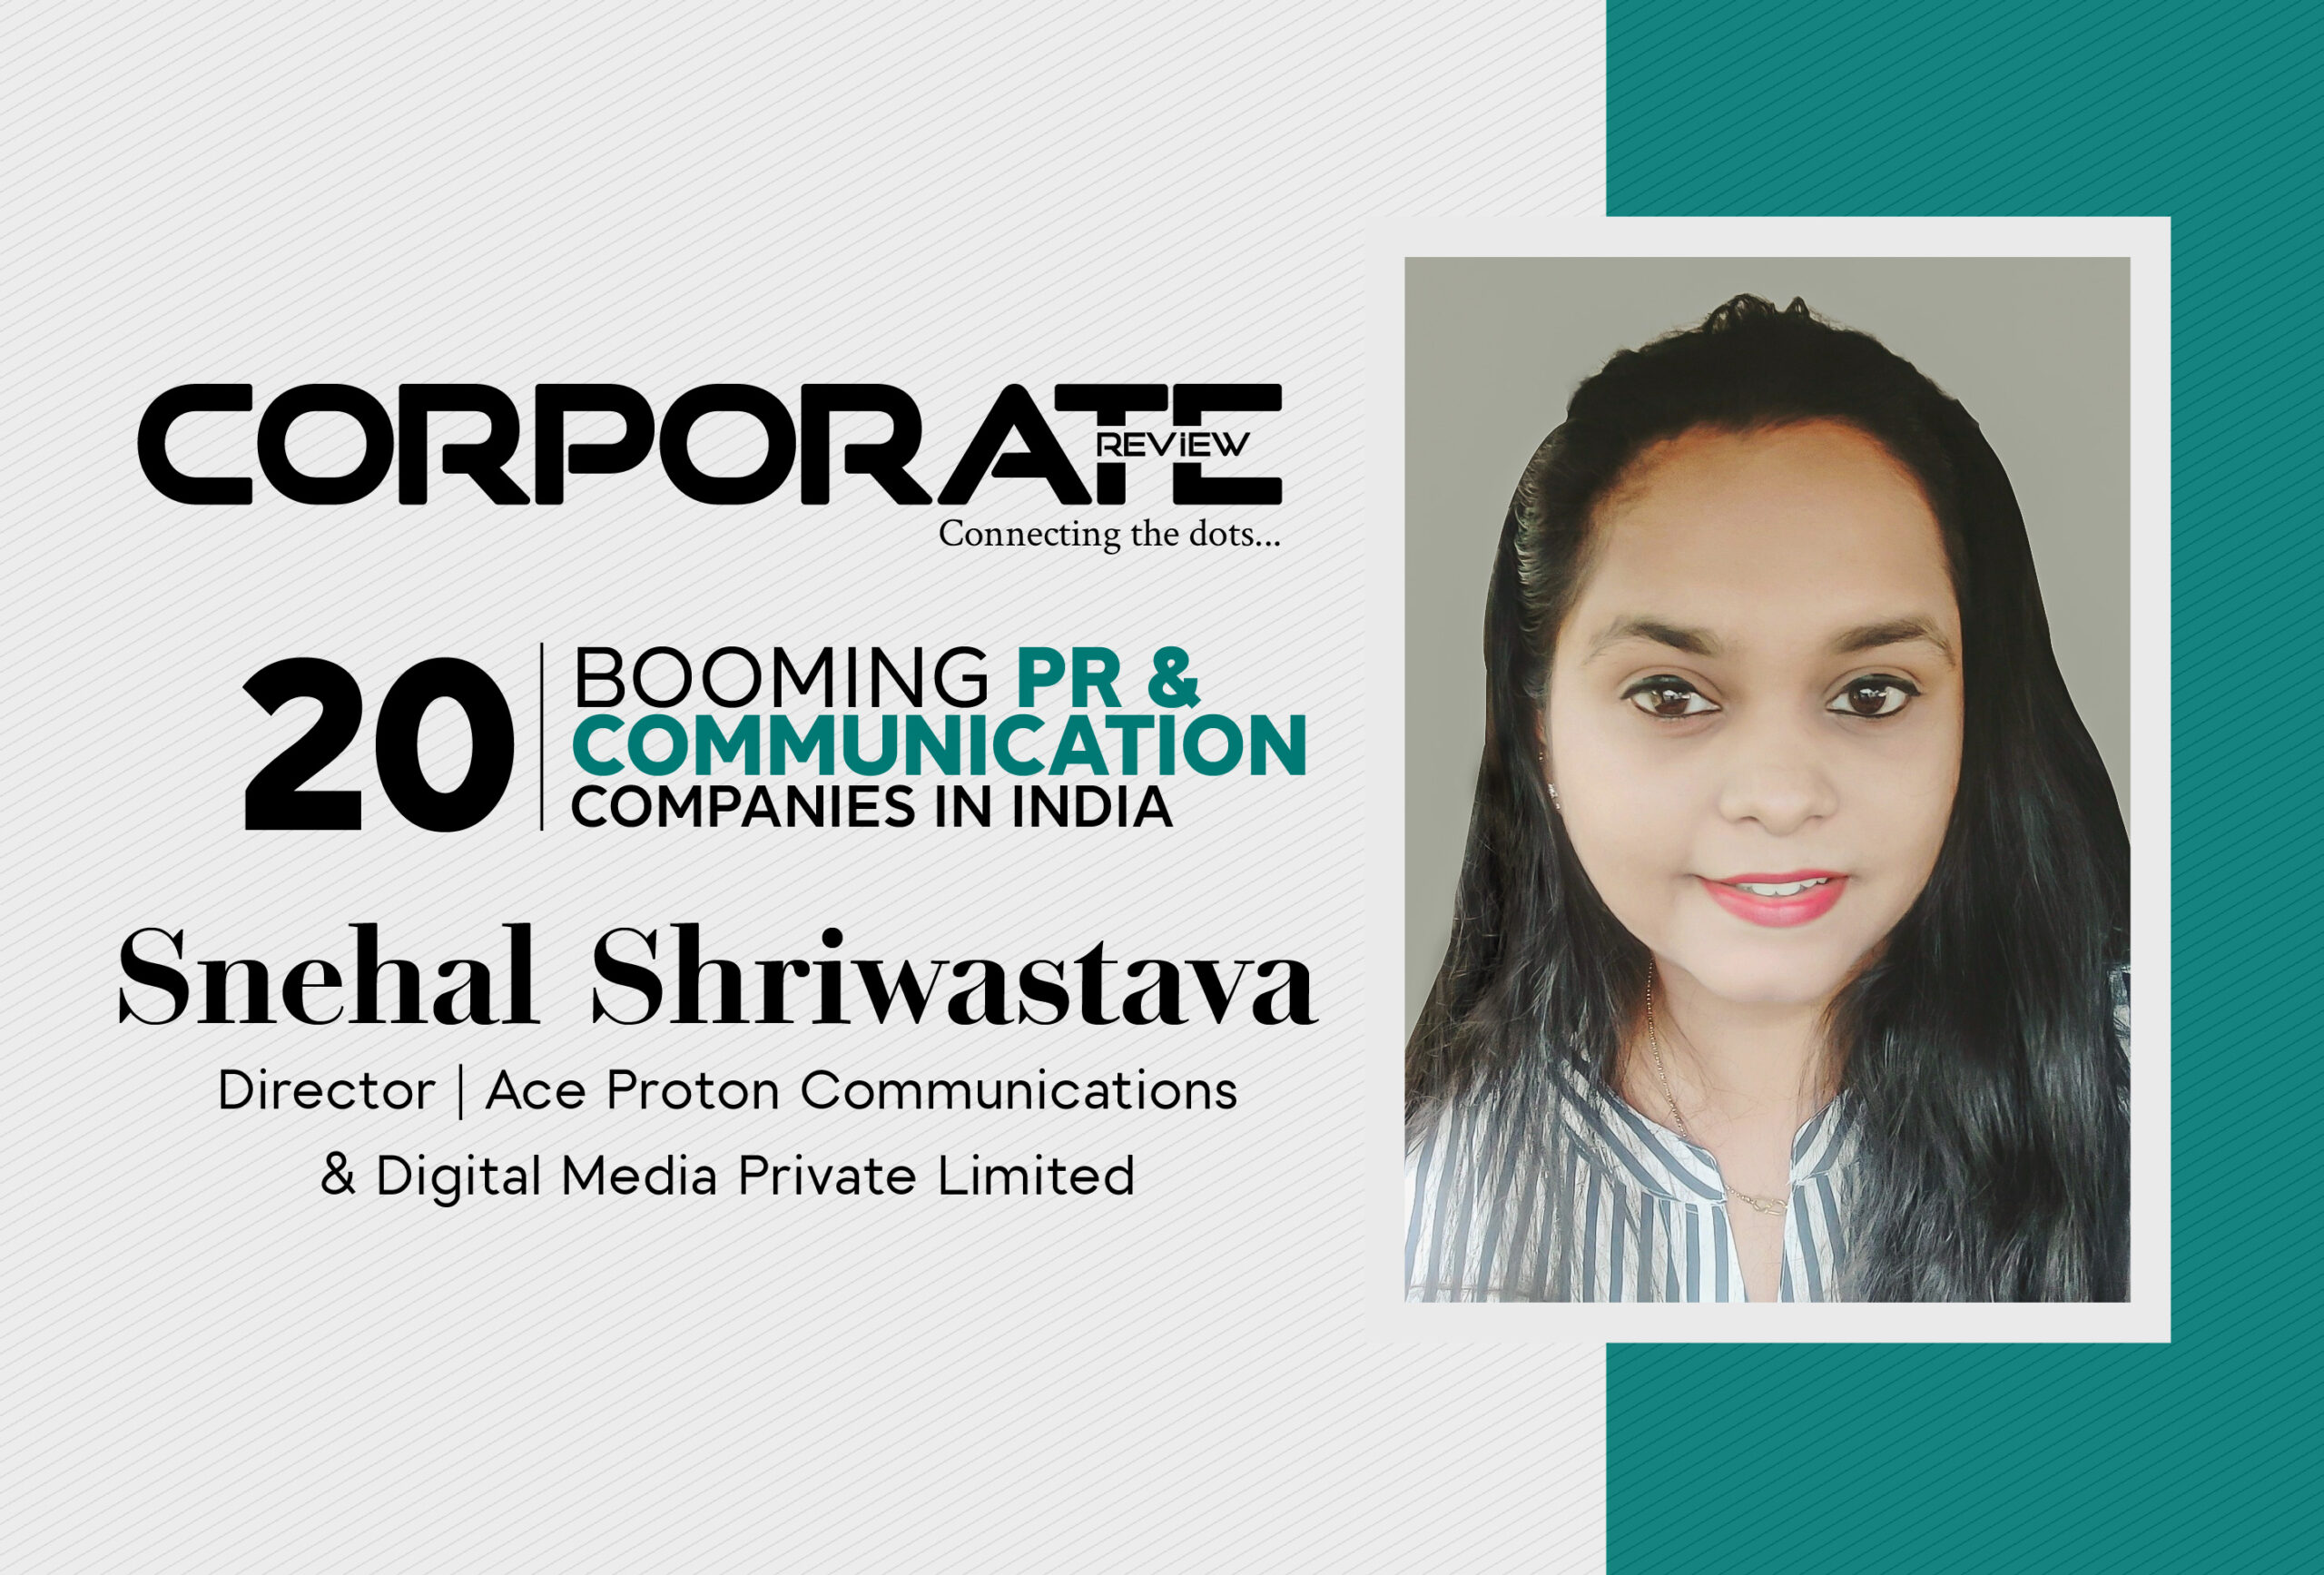 Ace Proton Communications & Digital Media Pvt. Ltd.: Convey your brand story with the right content through the right medium